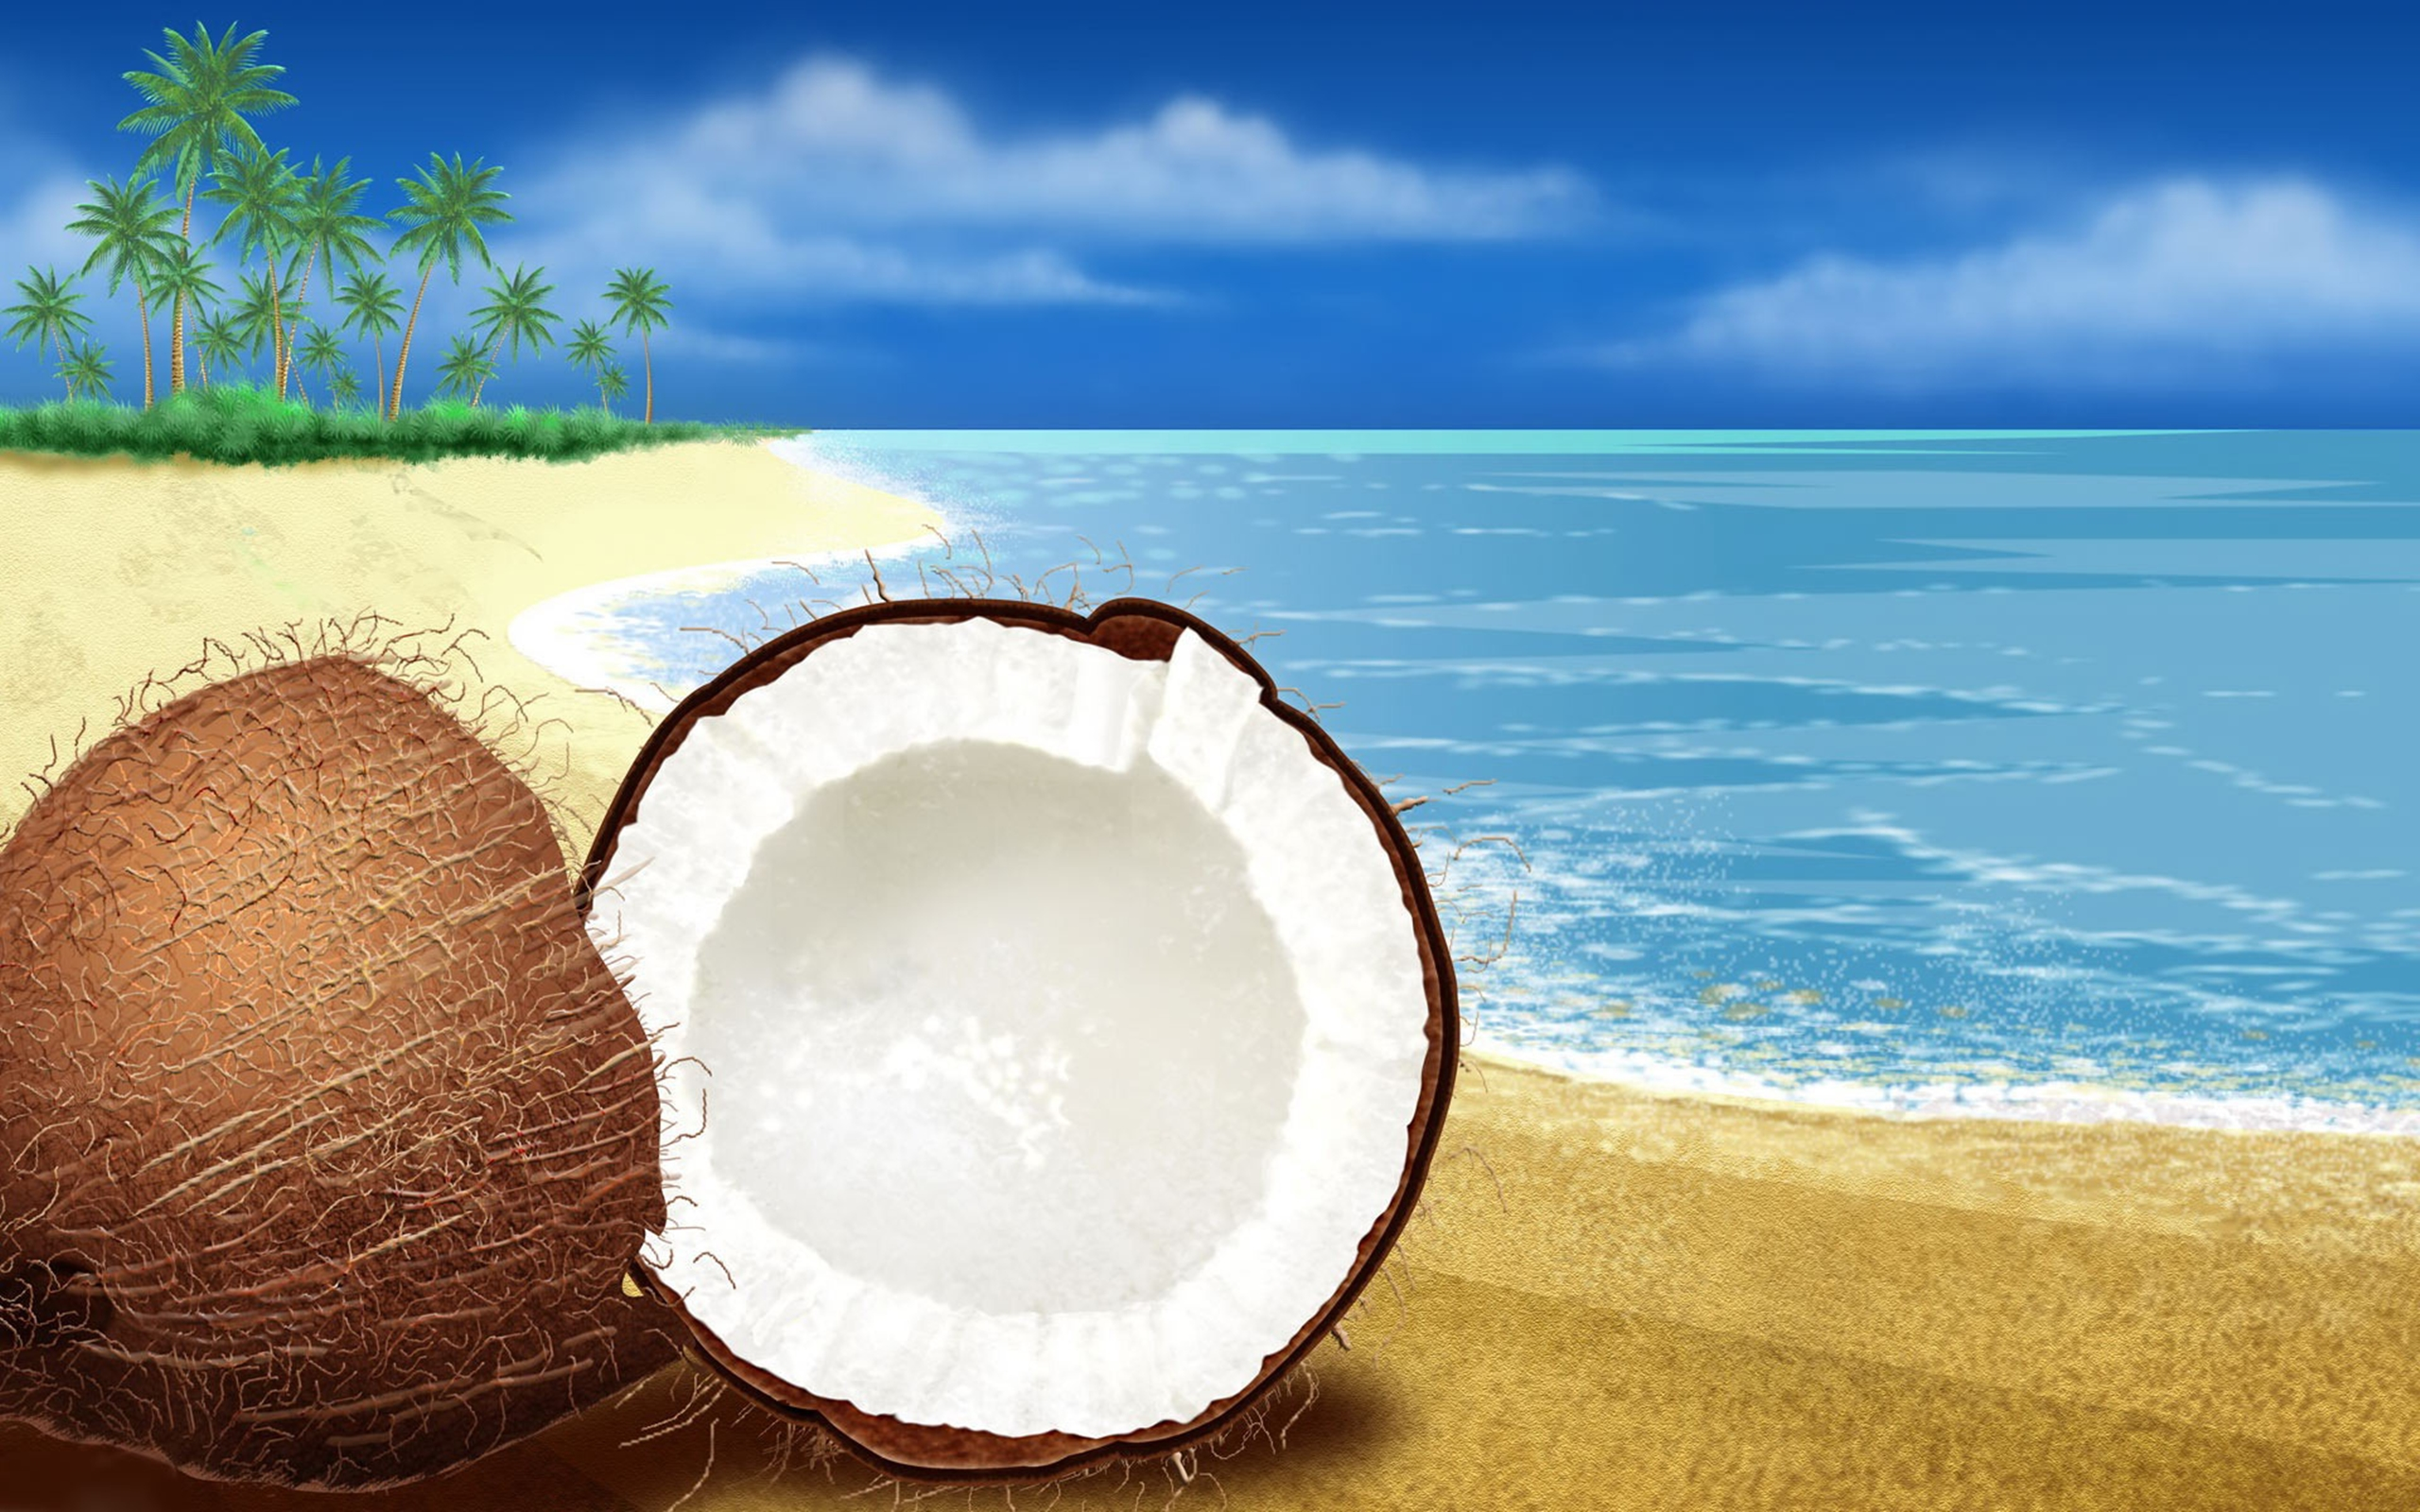 Hd Wallpapers For Windows 7 Desktop Background Coconut On The Beach Artistic Wallpaper 2560x1600